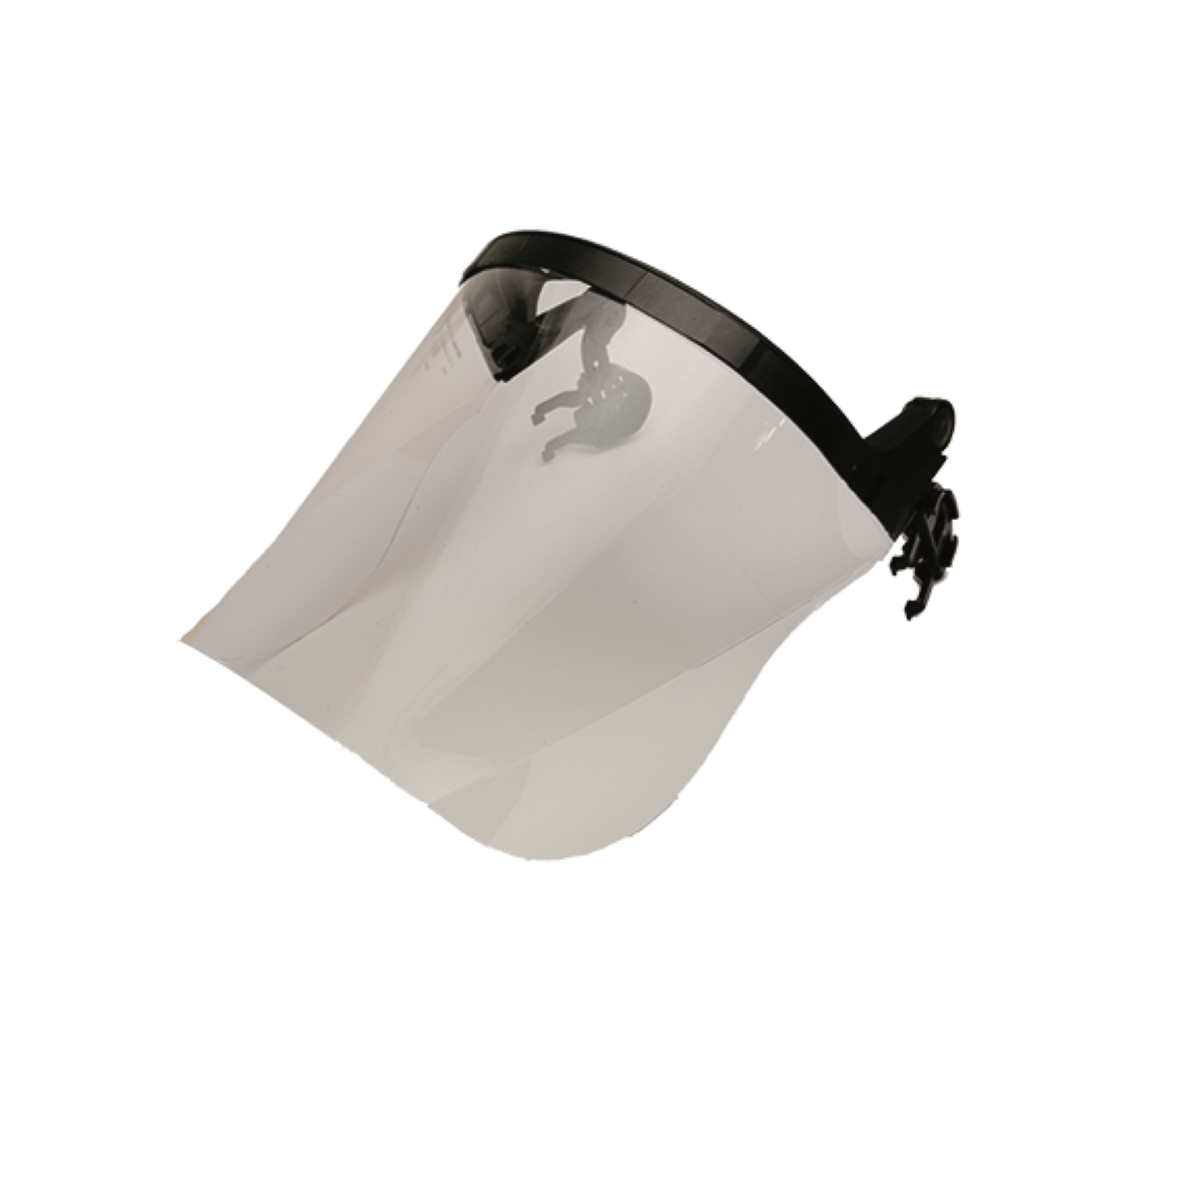 HF5590 Centurion 210mm Clear Polycarbonate Face Visor